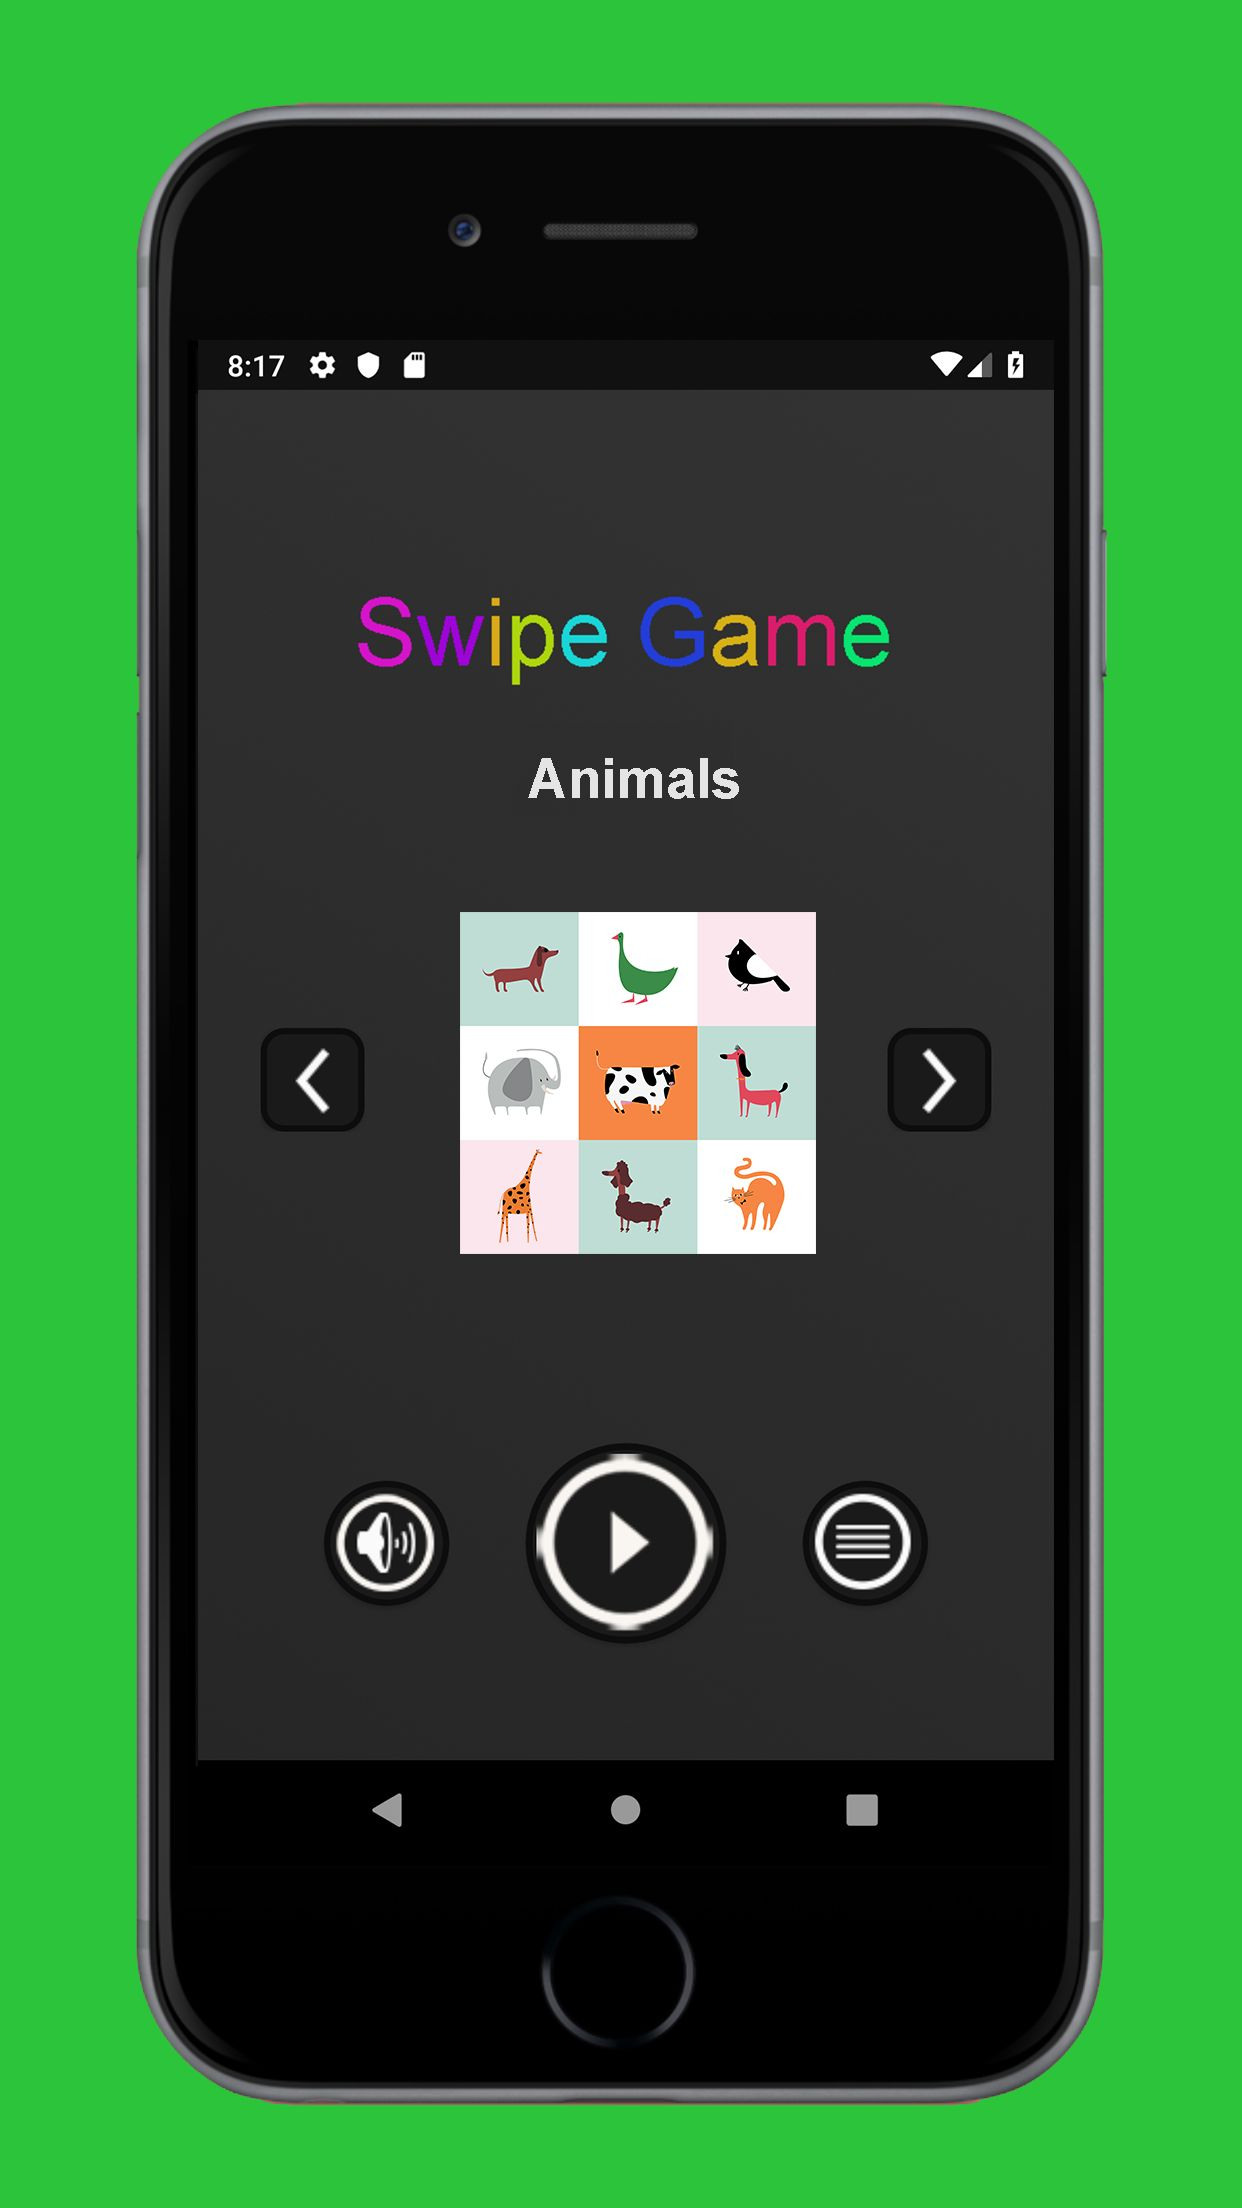 Swipe Game Version Basic - Android Template Screenshot 3